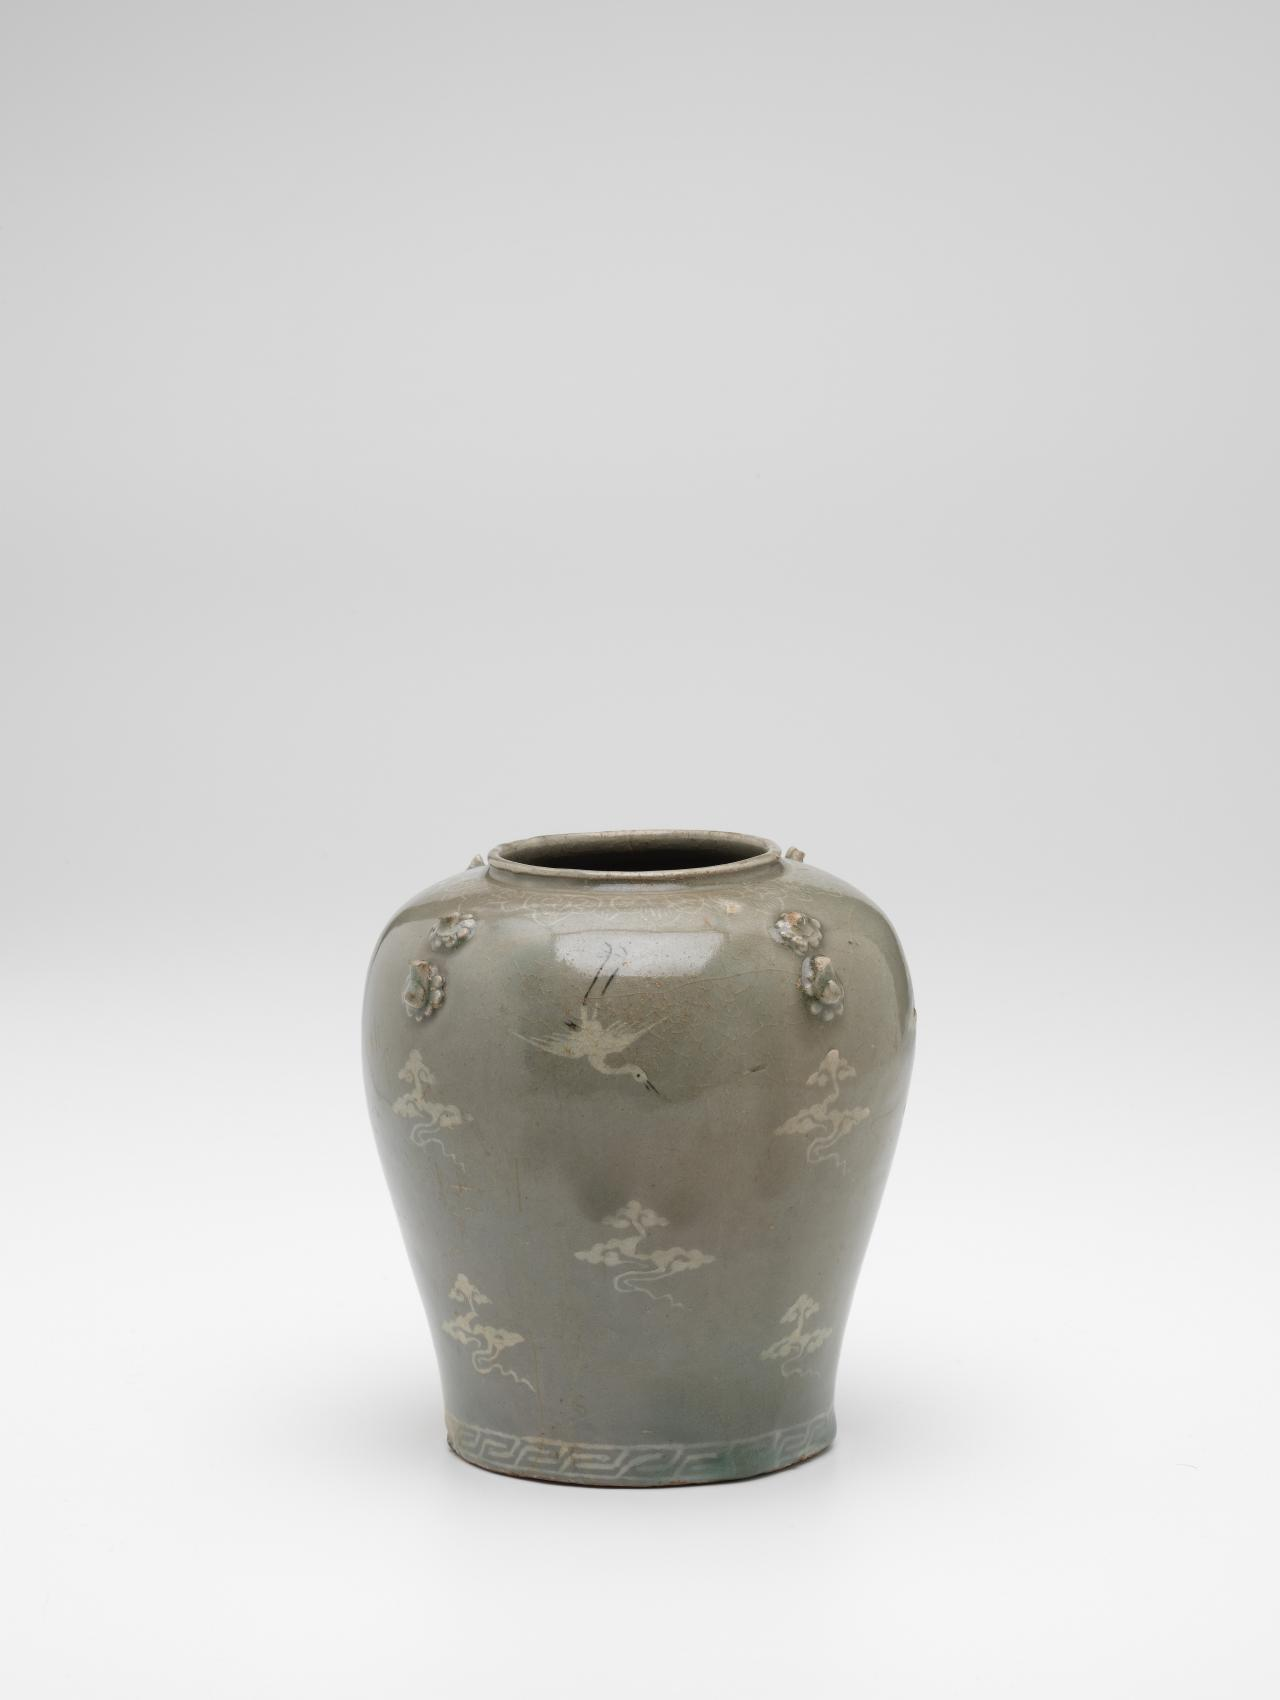 Jar with inlaid crane and cloud design